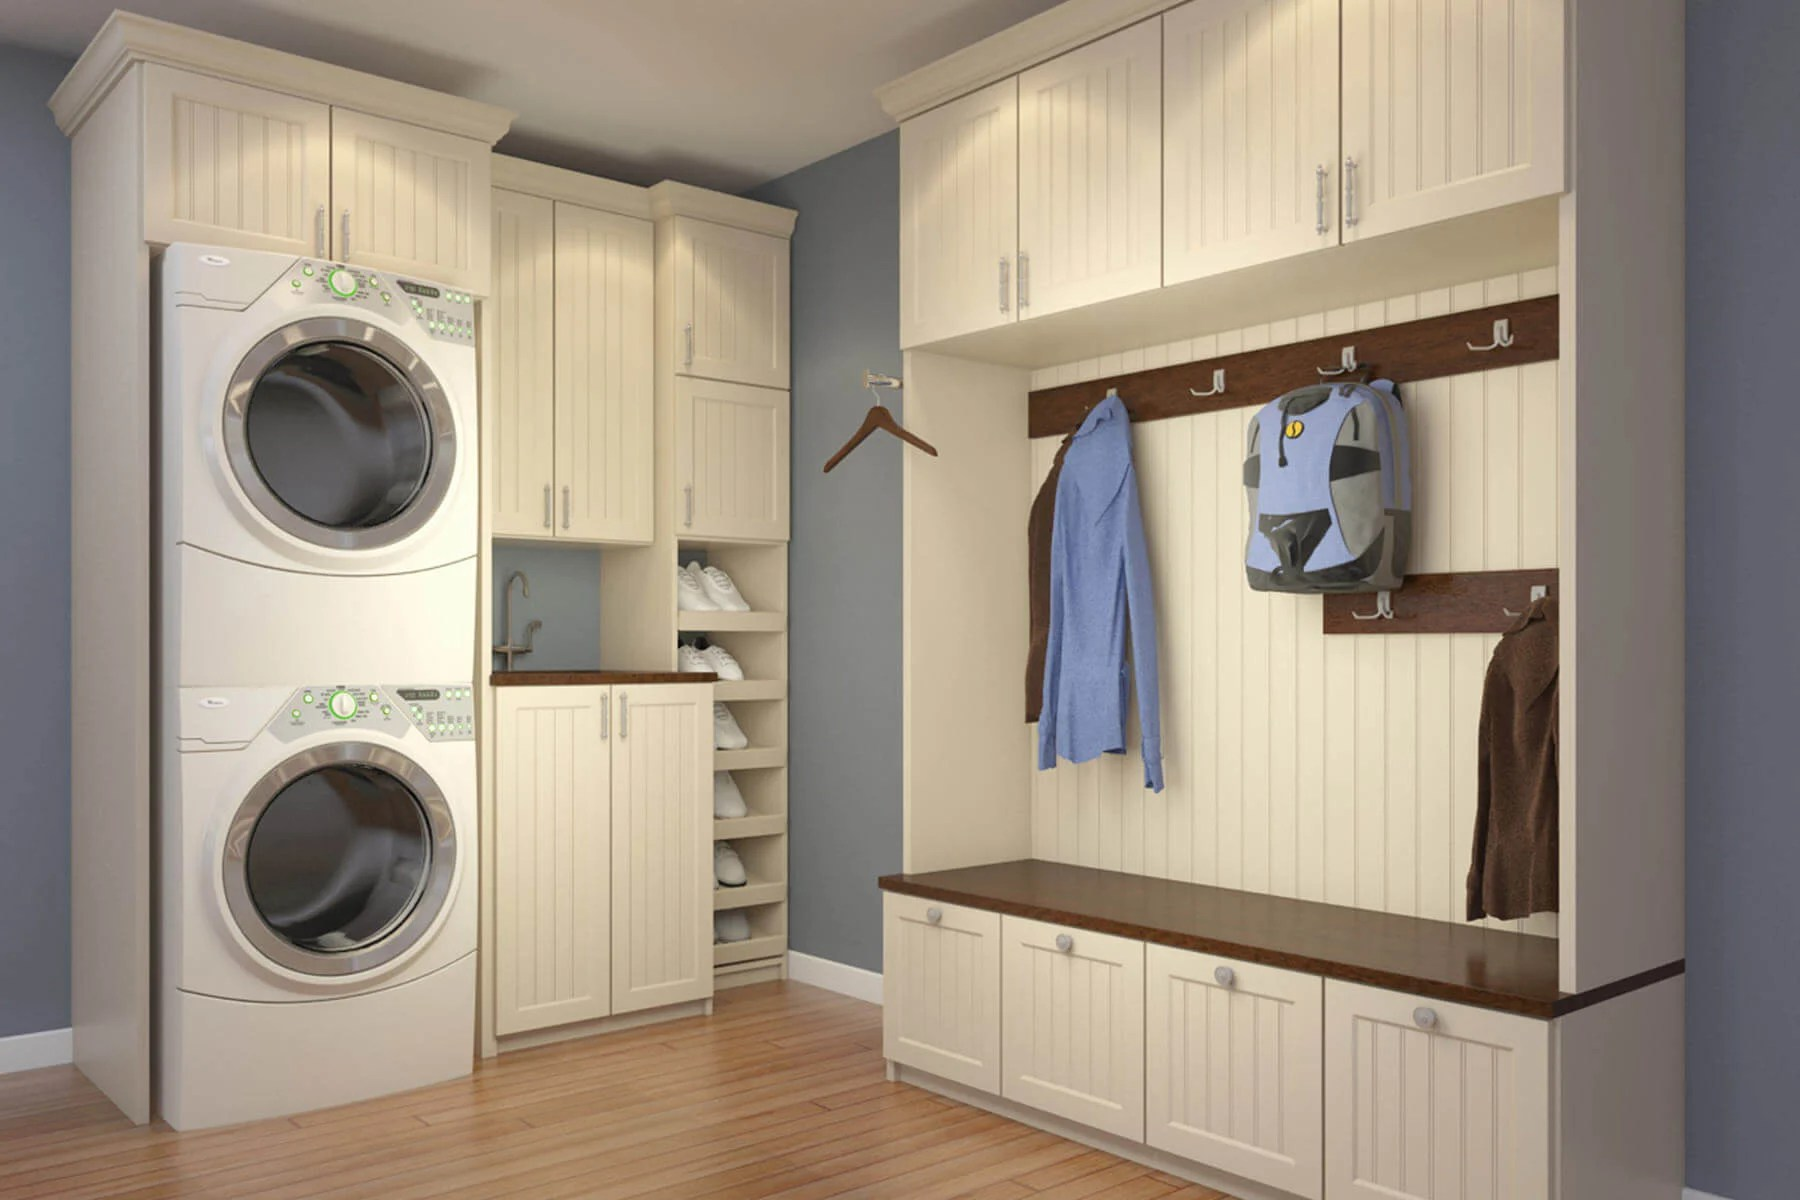 85+ Big & Small Laundry Room Ideas & Designs (with Storage) on Small Laundry Room Cabinets  id=66854